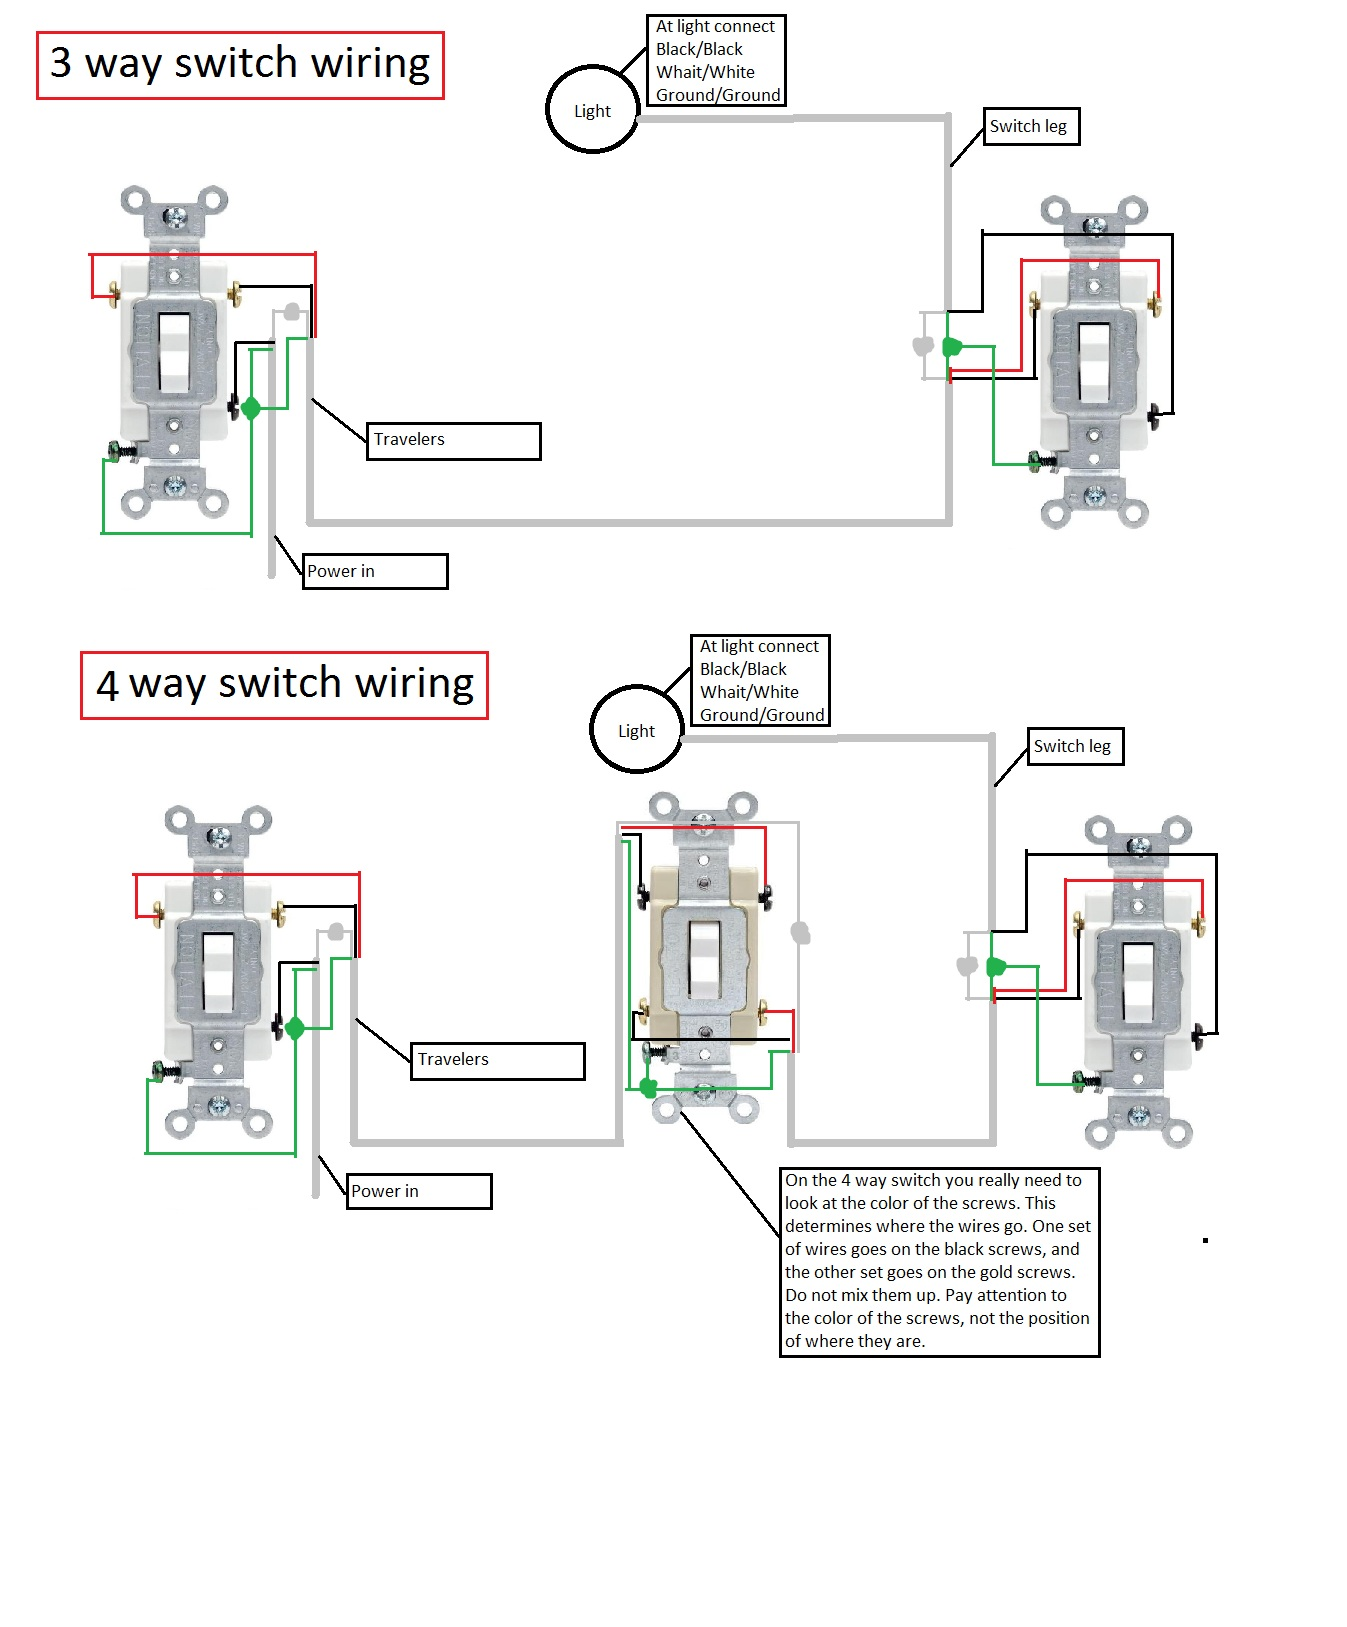 1 Way Switch Wiring Diagram Pdf Wiring Diagrams Database – 1 Way Light Switch Wiring Diagram